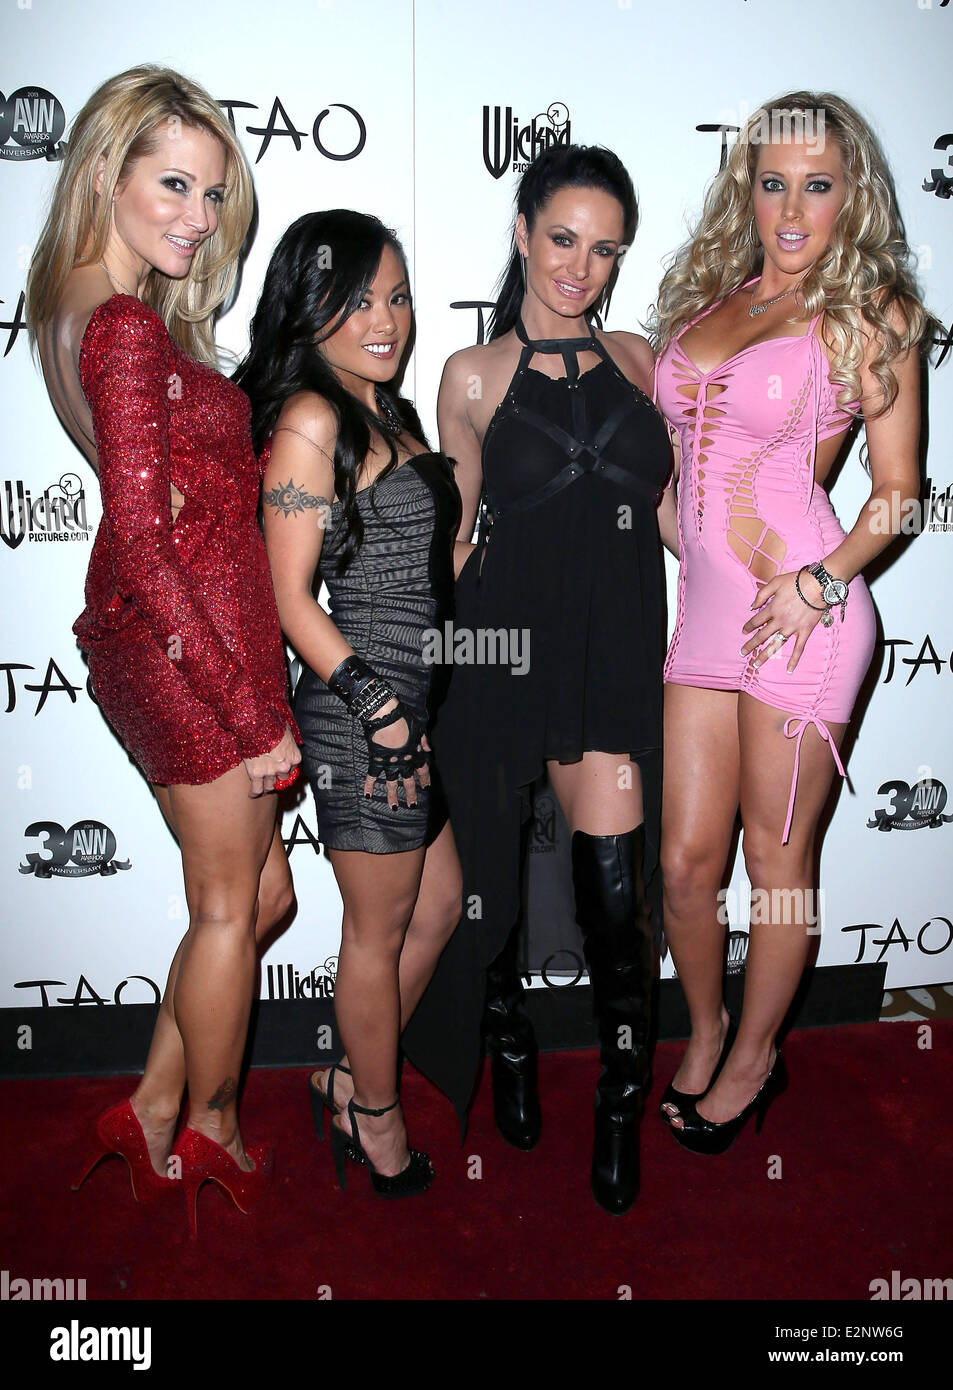 Official Avn Awards Pre Party At Tao With Special Guests The Wicked Girls Inside The